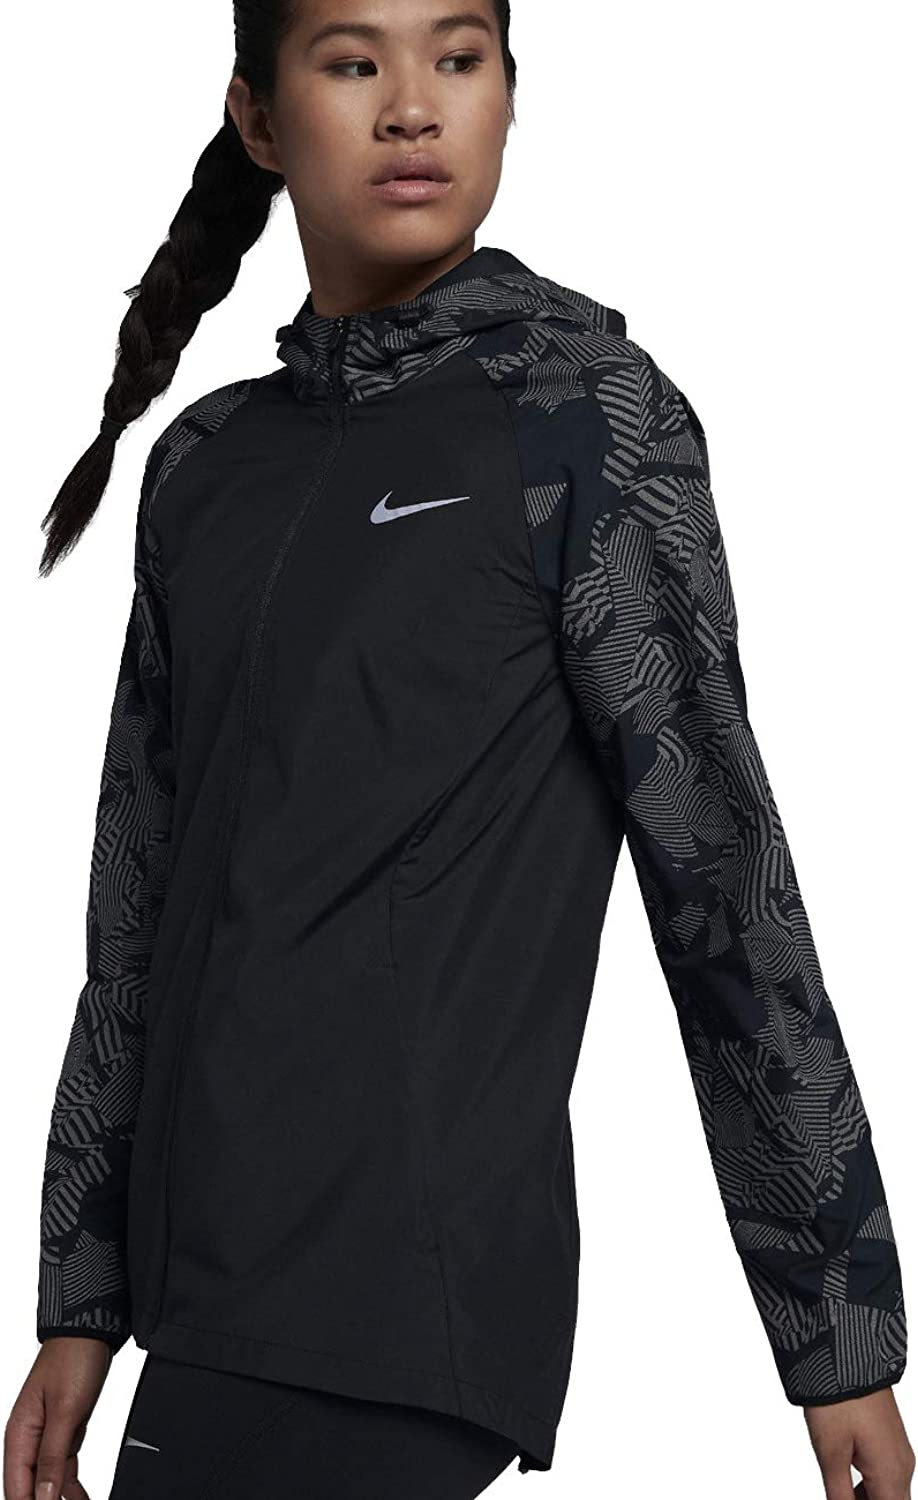 NIKE Essential Flash Women's Reflective Running Jacket